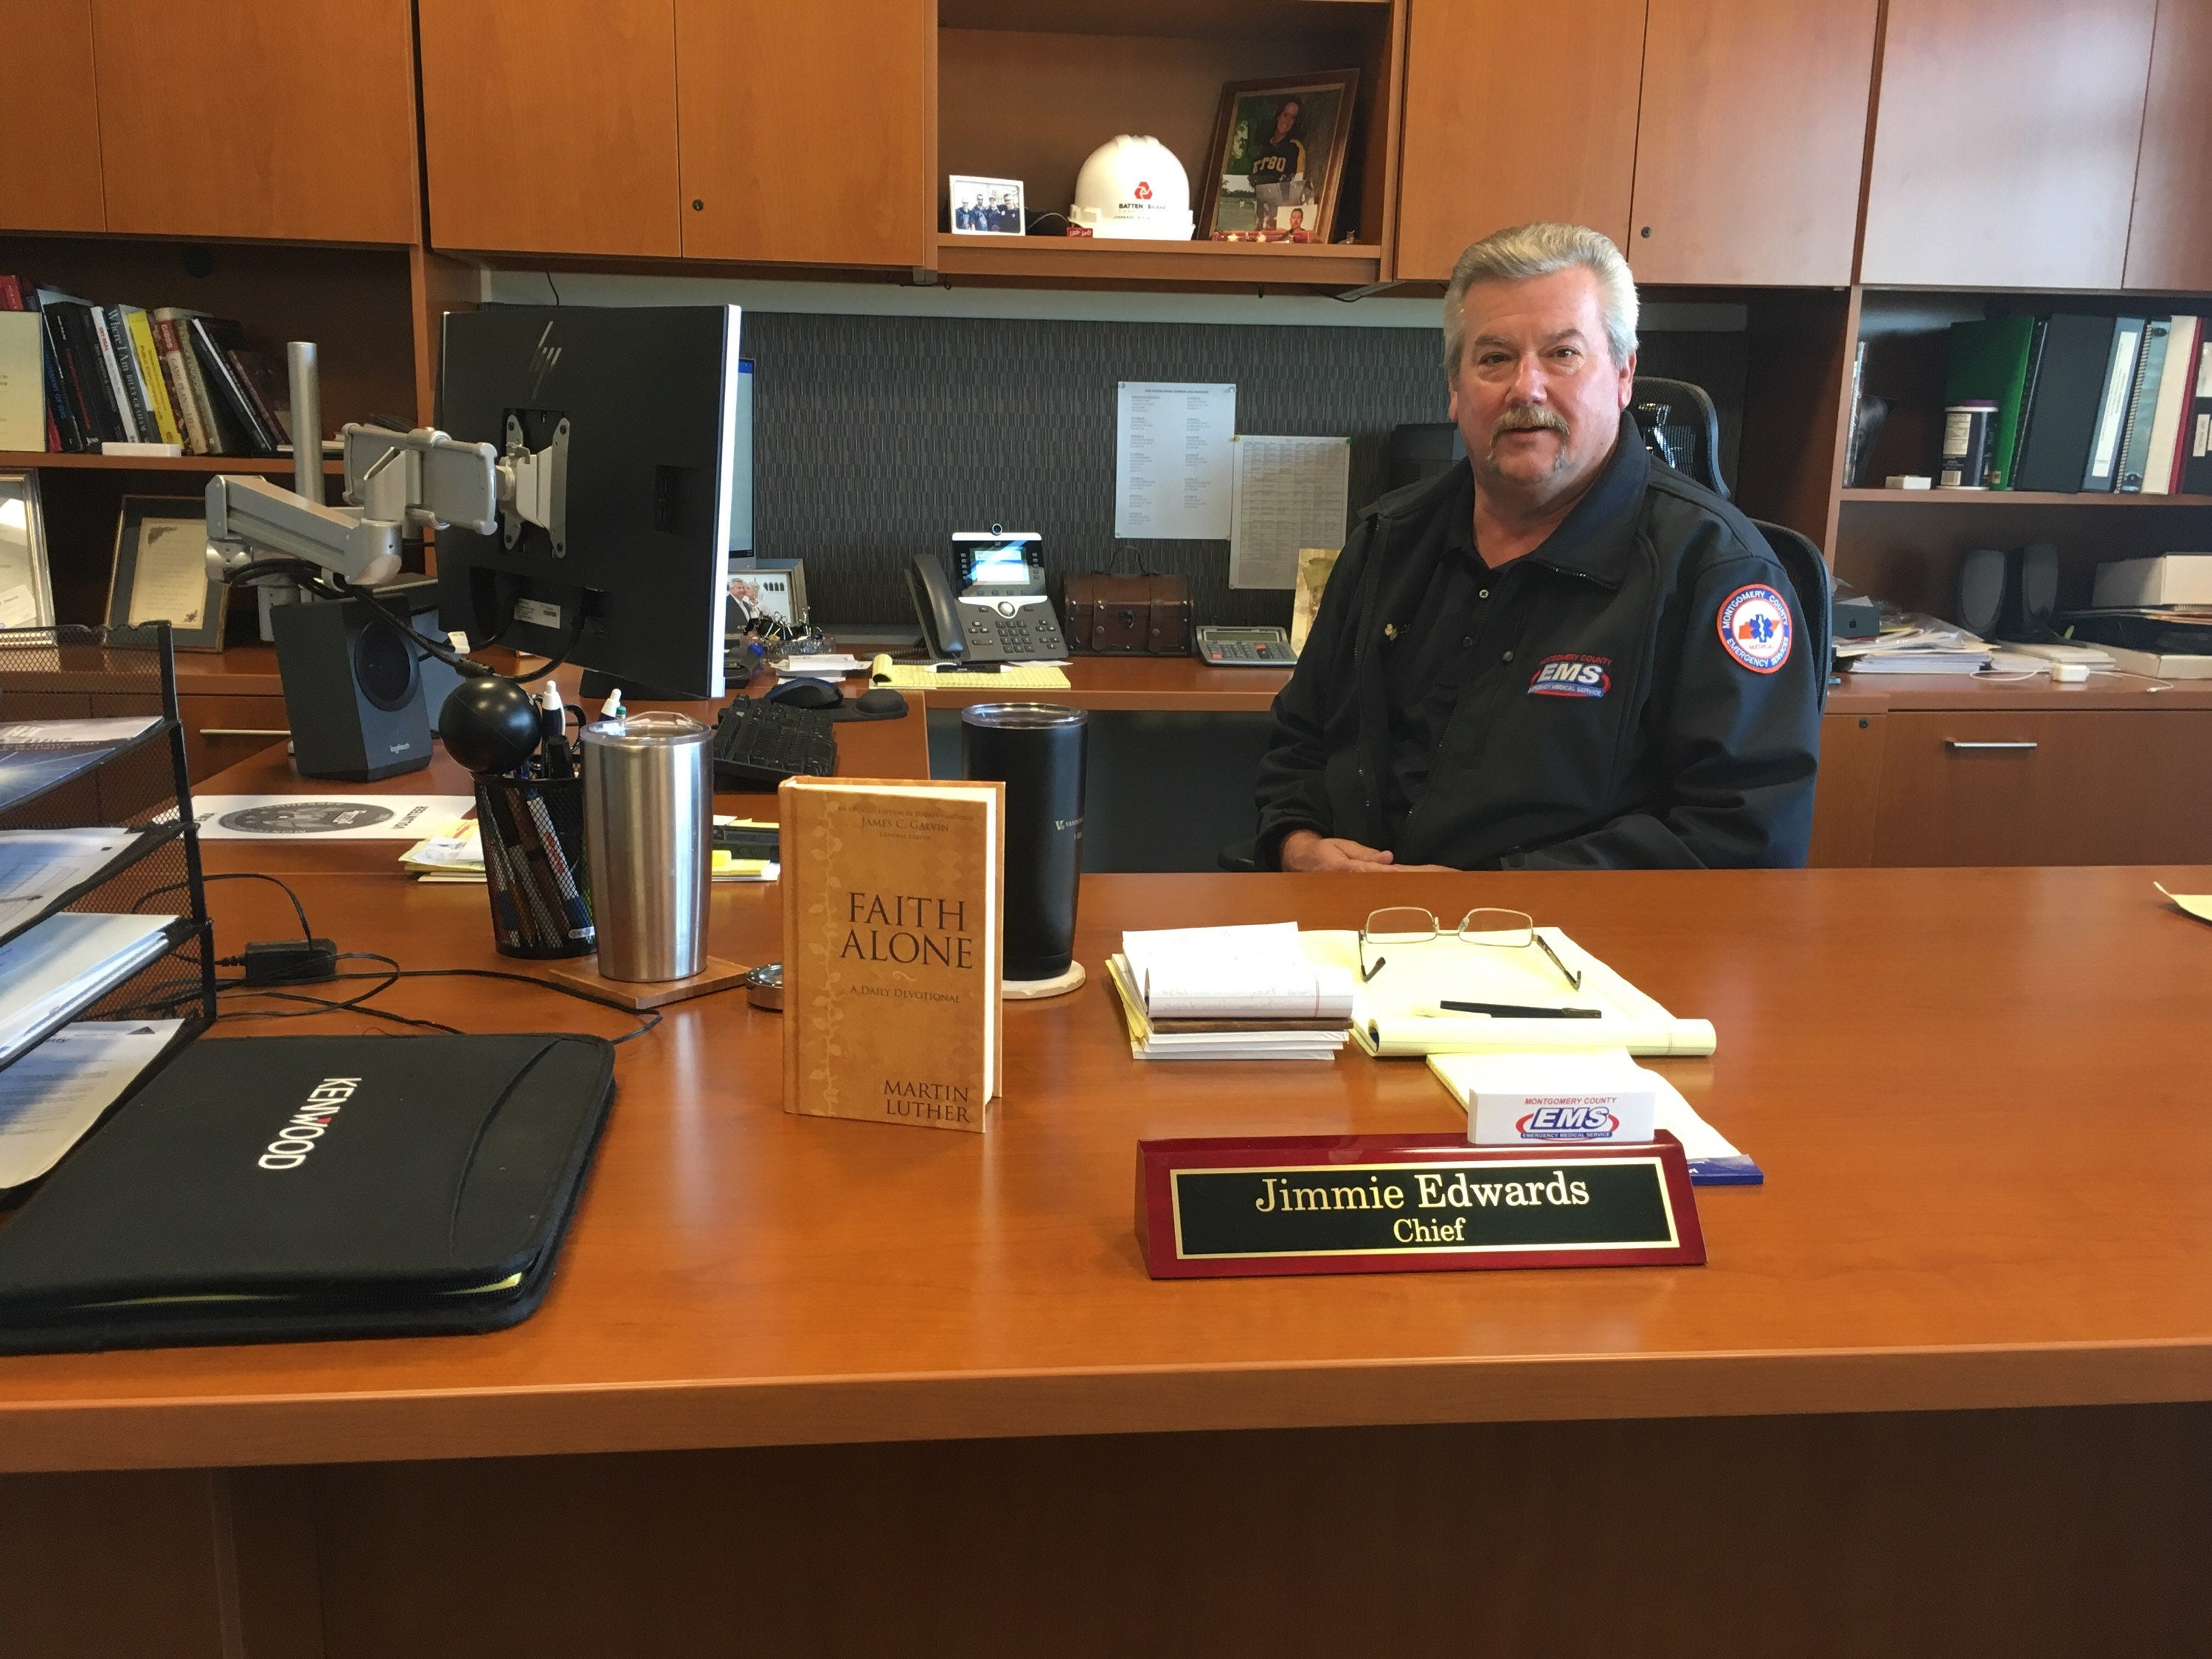 Jimmie Edwards has been promoted from county EMS chief, to a newly-created role as director of Emergency Services.